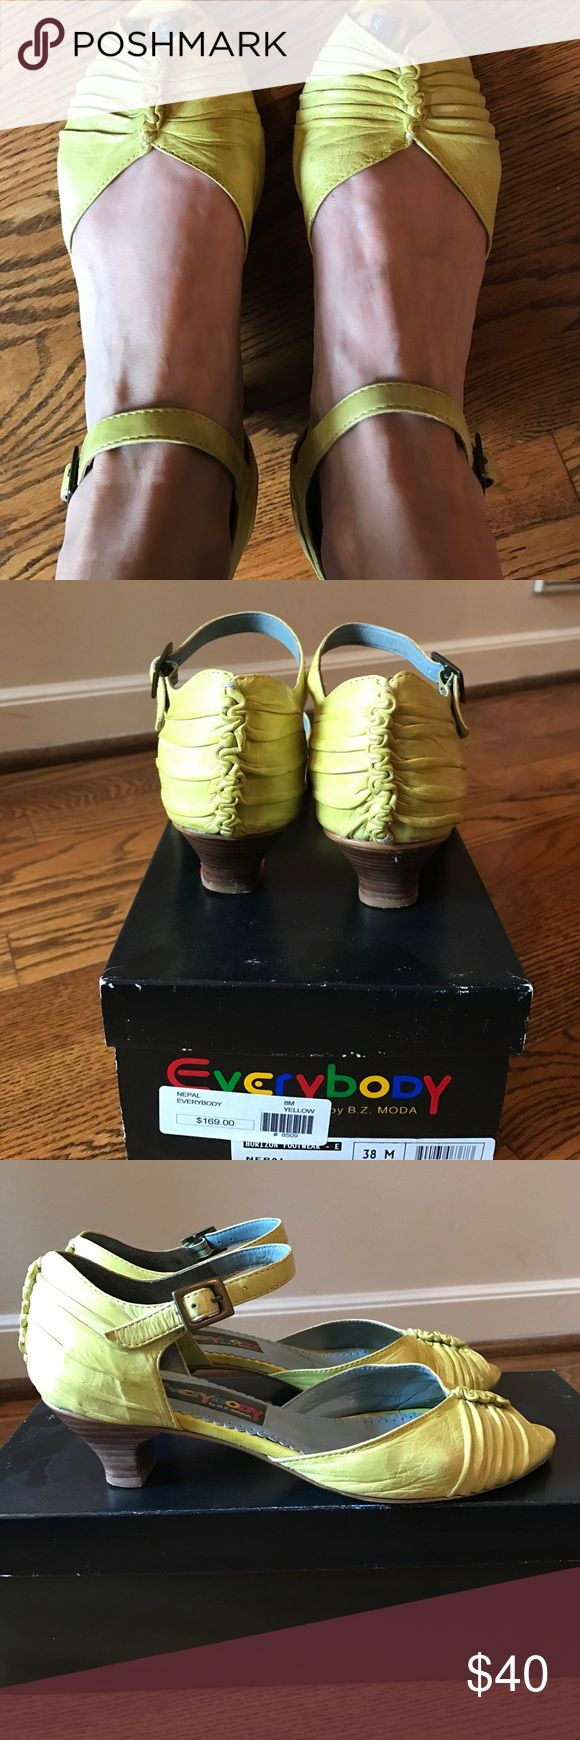 """Everybody """"Nepal"""" Ruffled Leather Sandals Make a bold statement in these ruffled top and back yellow sandals. They will look amazing with anything you want to add a pop of color too. 1 1/2"""" heel. Excellent condition. Everybody Shoes Sandals"""